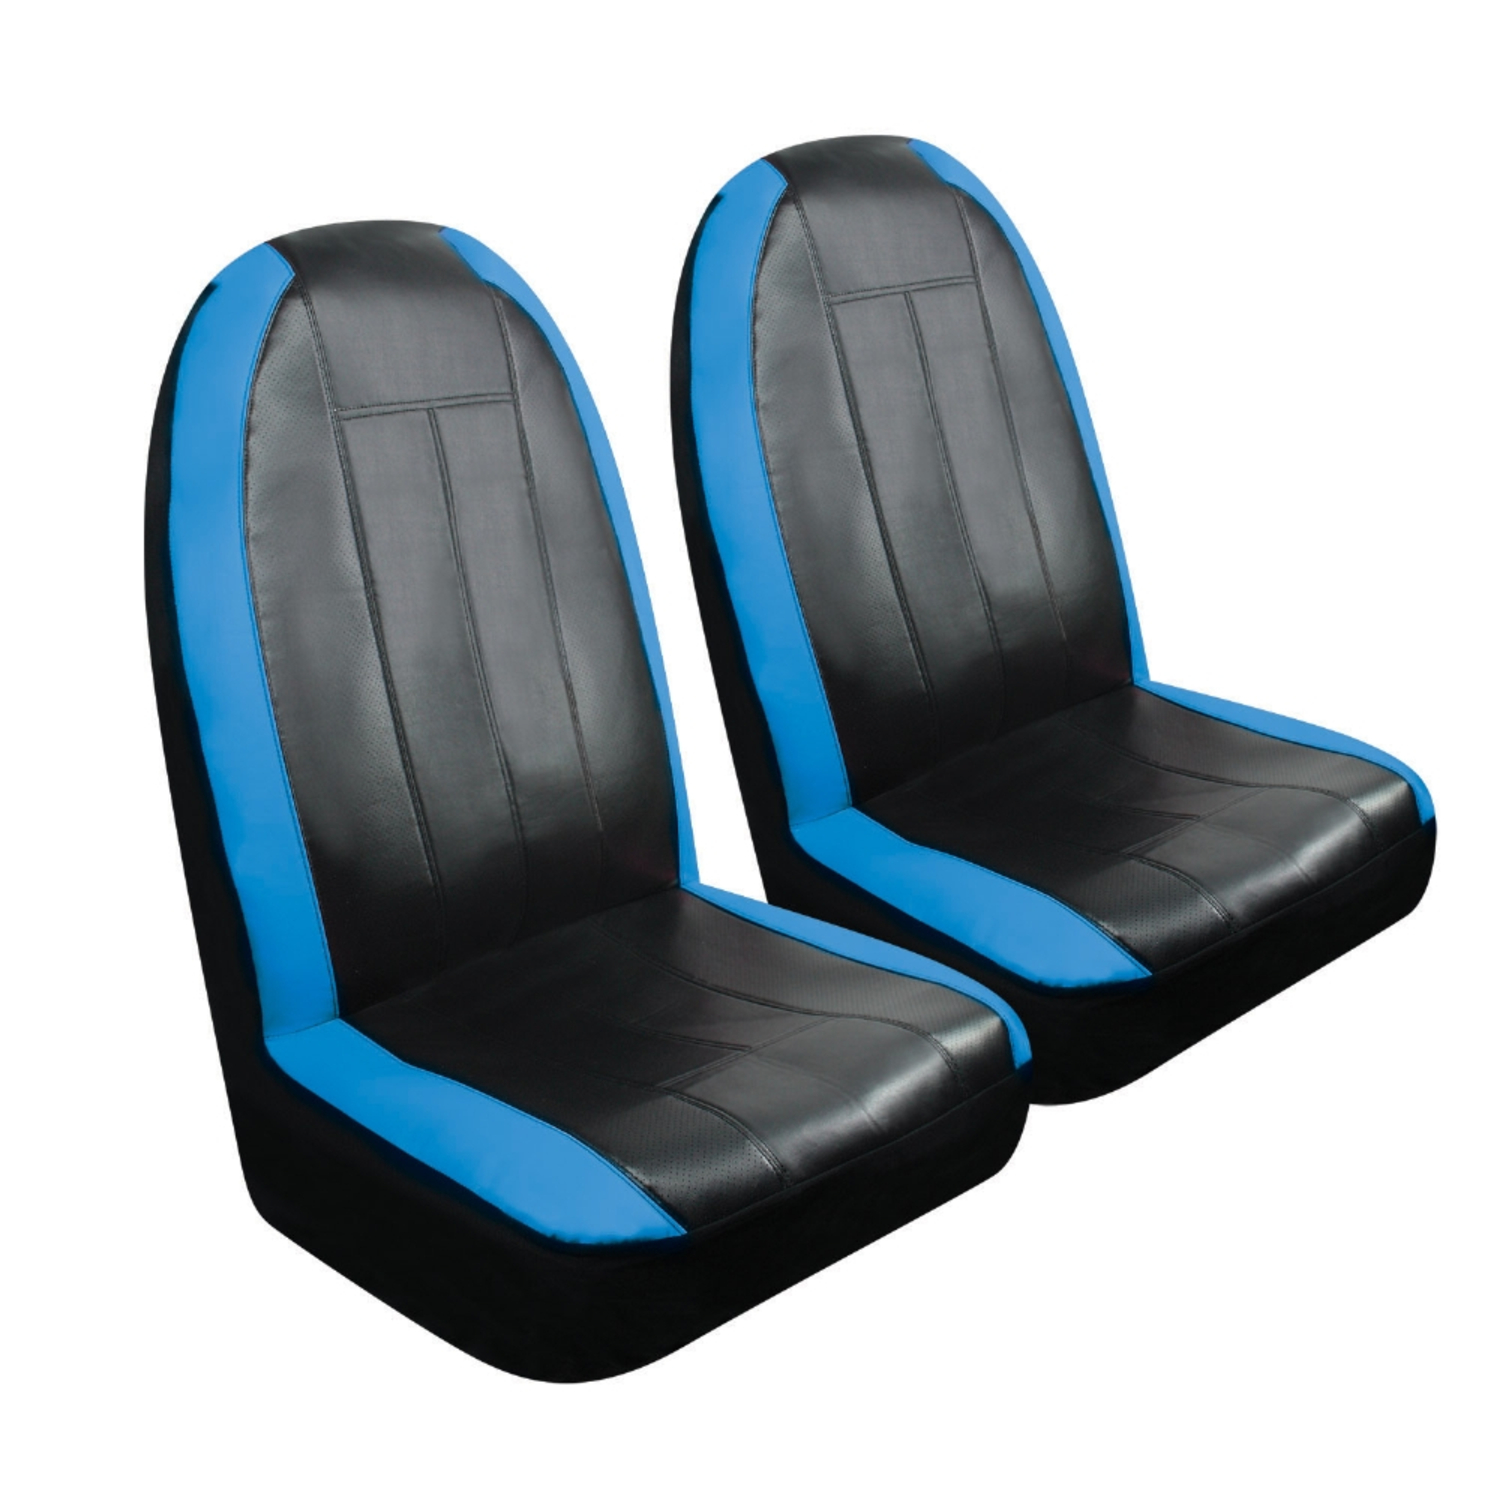 Black/Blue Sport Synthetic Leather Seat Cover - Pair (SC-440B)